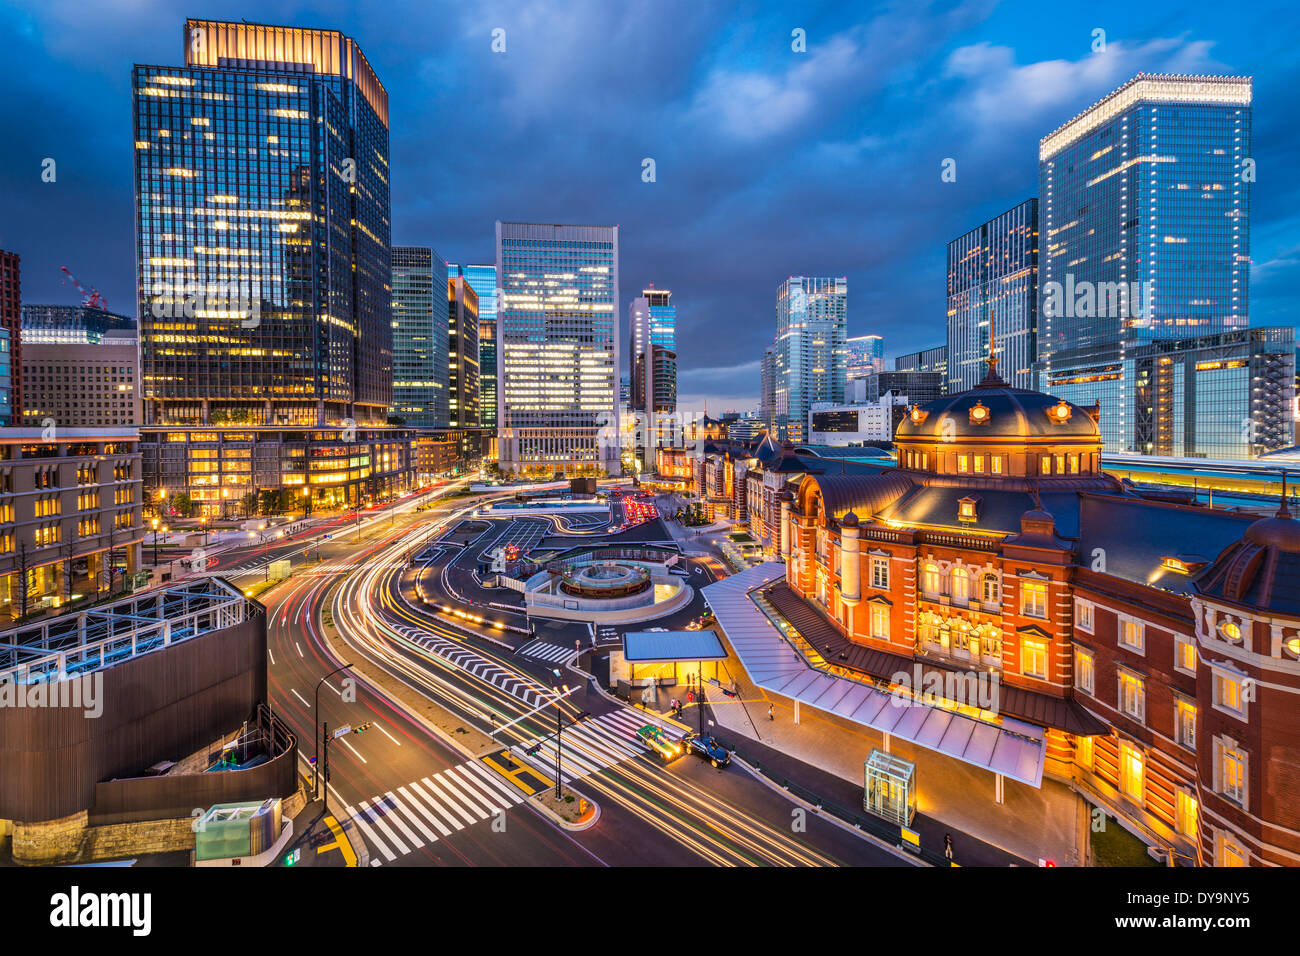 Tokyo, Japan at the Marunouchi business district and Tokyo Station. - Stock Image